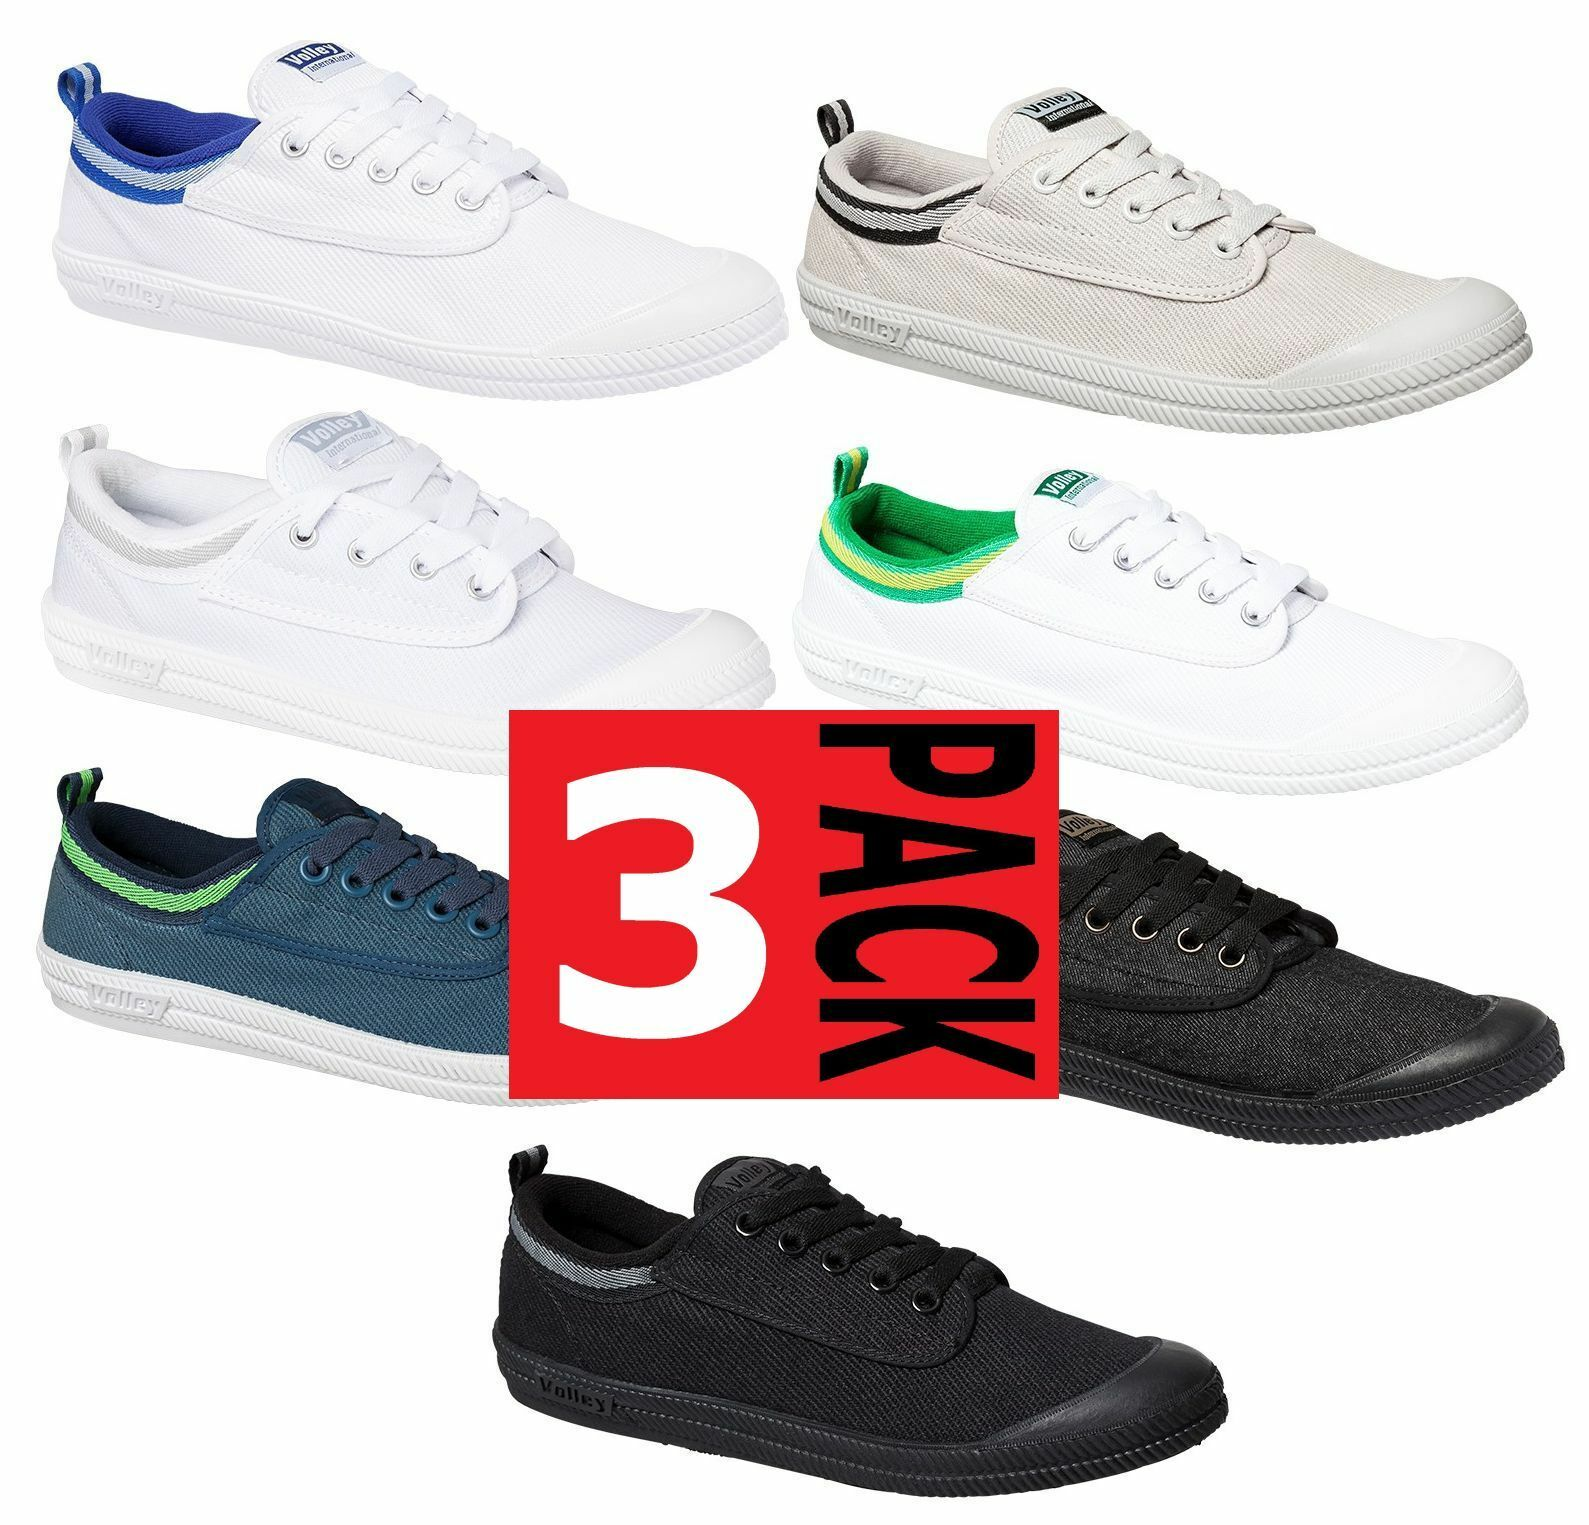 3 x MENS DUNLOP VOLLEYS INTERNATIONAL CANVAS VOLLEY WHITE blueE BLACK GREEN SHOES